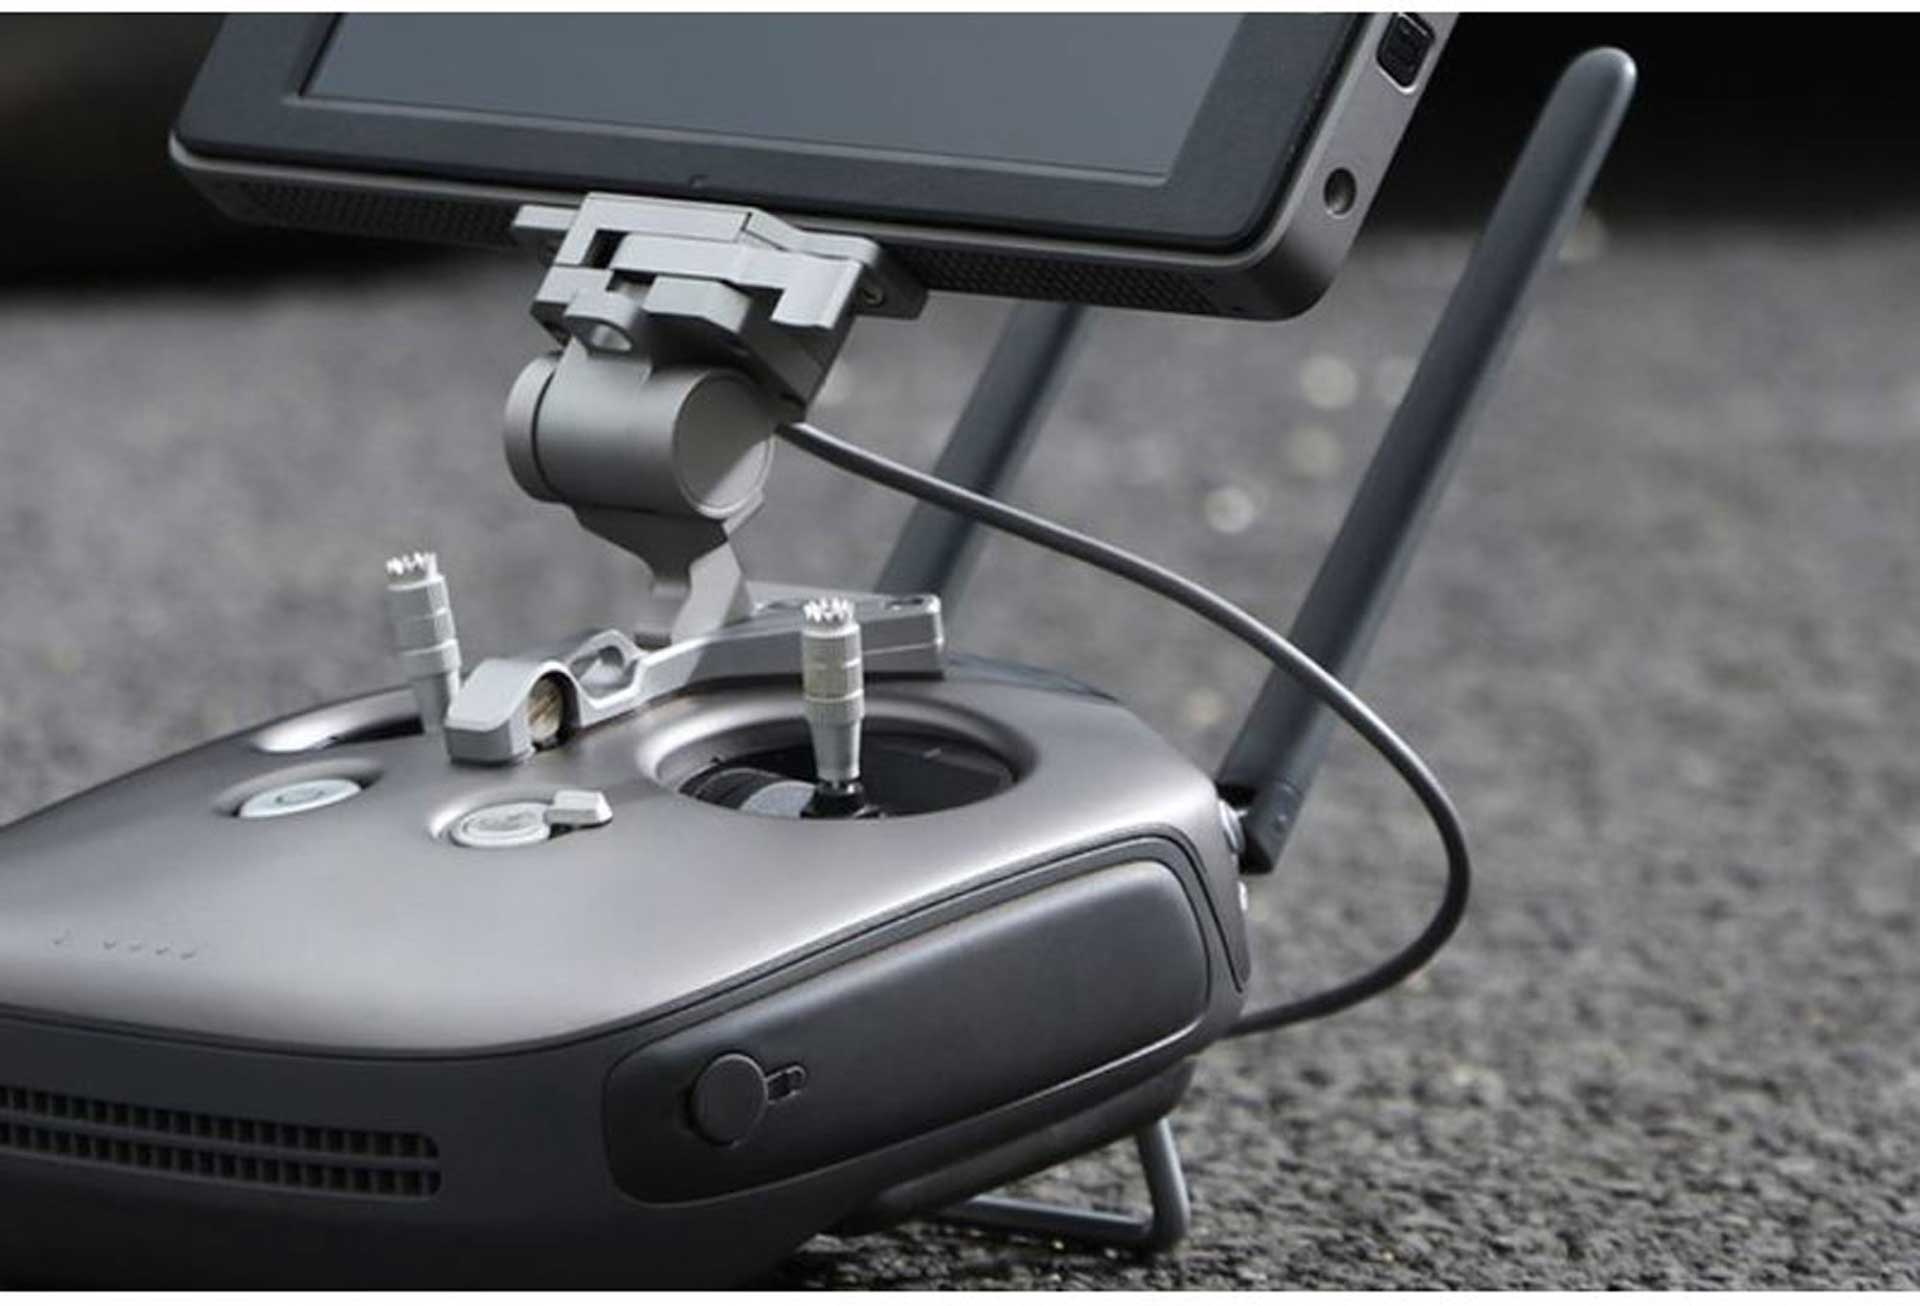 DJI CRYSTAL SKY MONITORHALTERUNG (PART3)